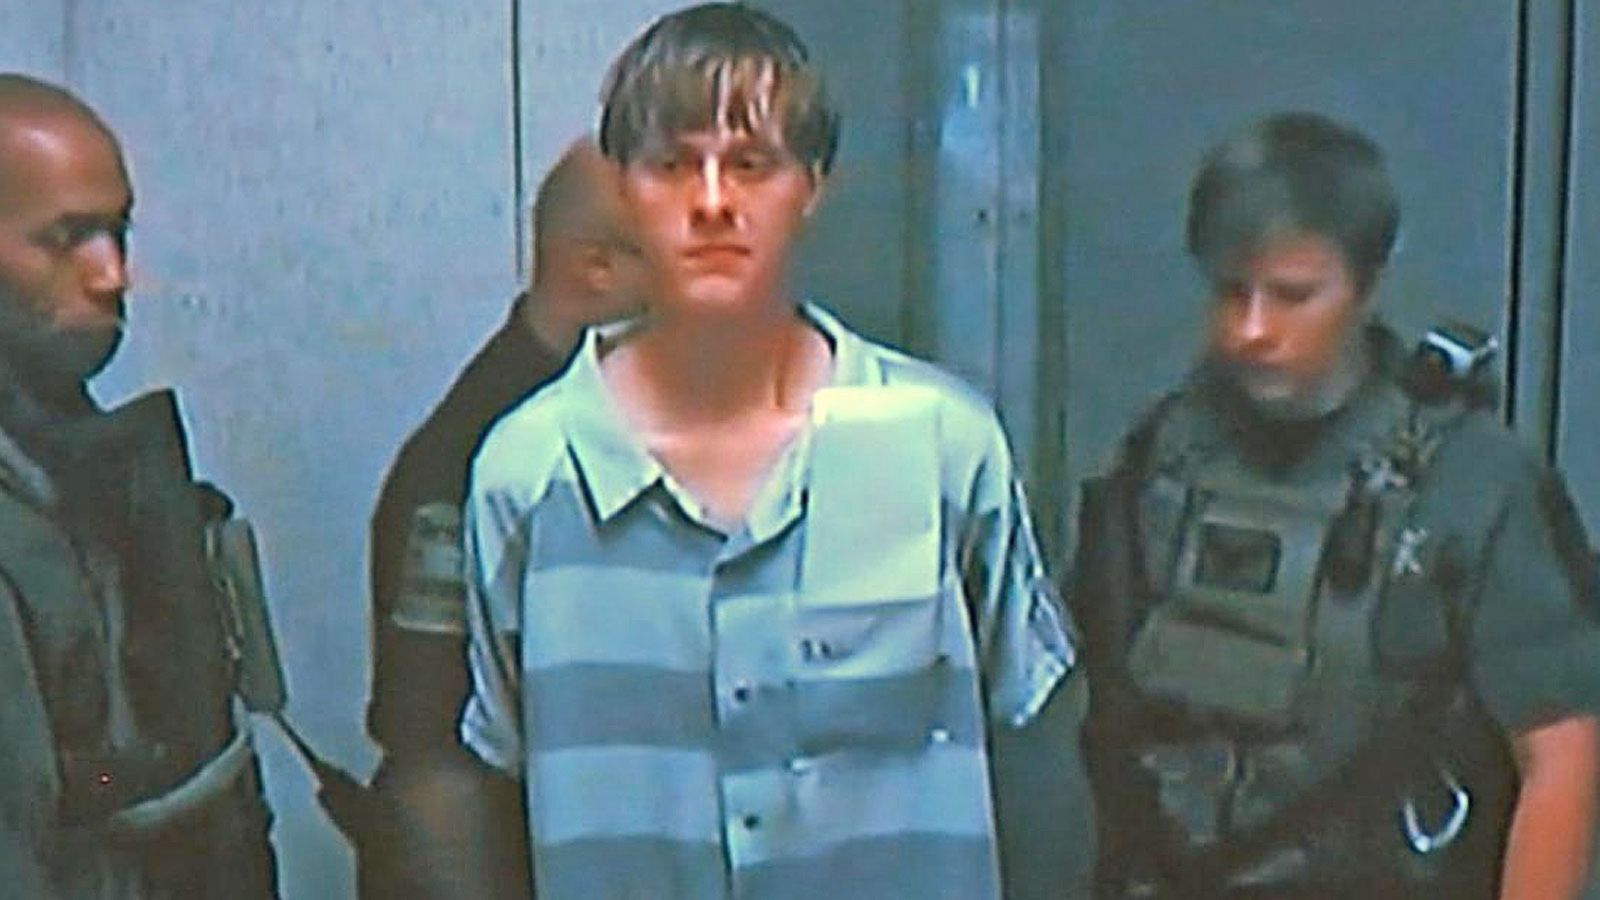 VIDEO: Alleged Charleston Church Shooter's Confession Shown in Court